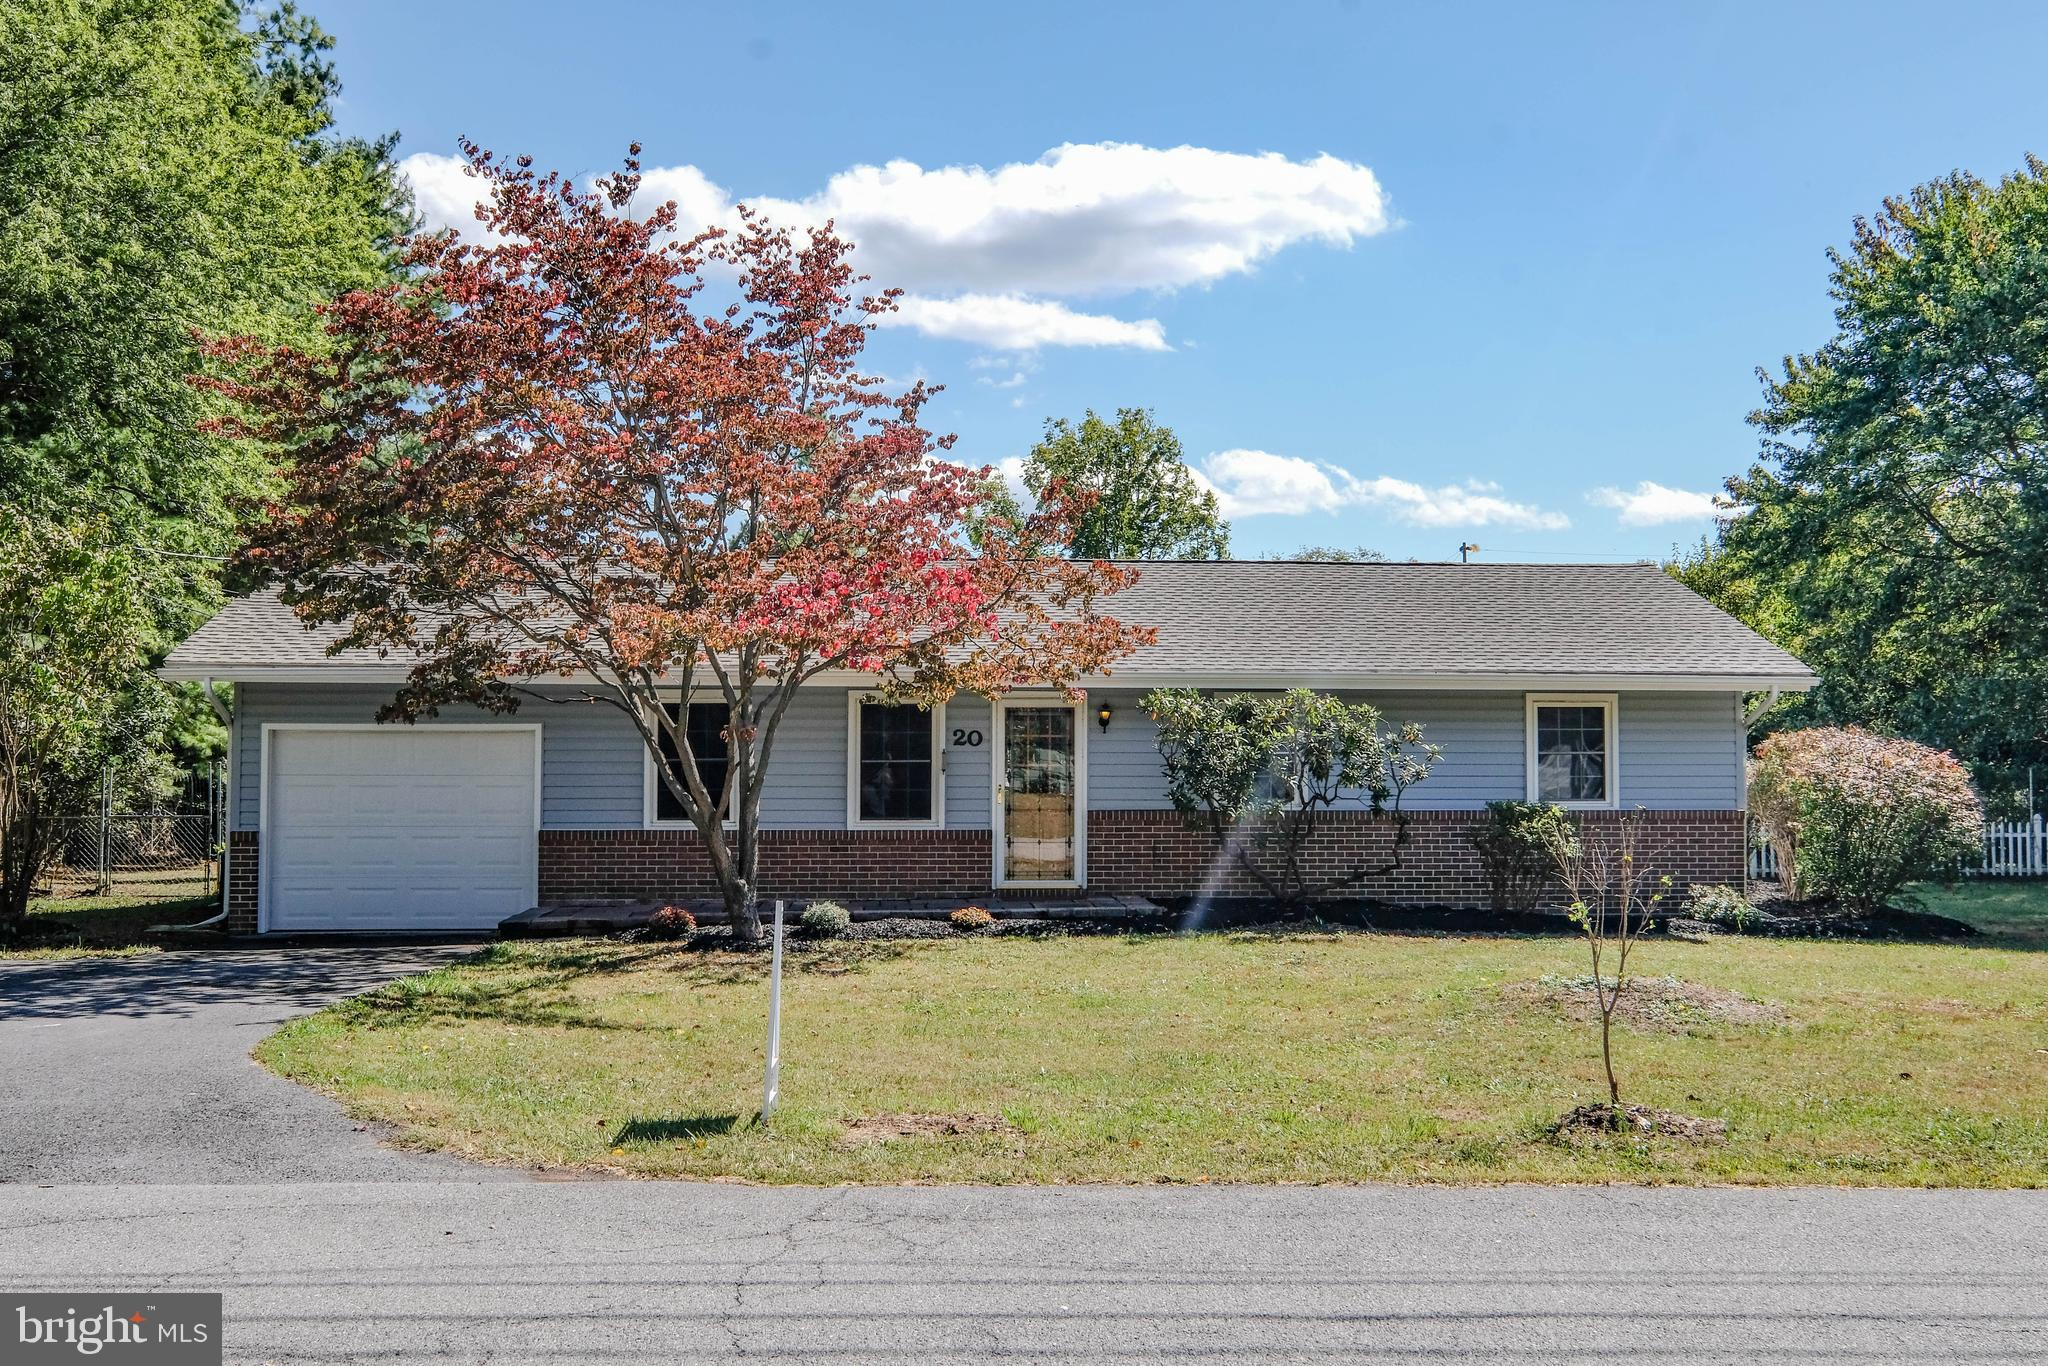 Talk About Curb Appeal!  Rancher In Shepherdstown, So Close To Downtown (within 5 minutes) Rancher 3